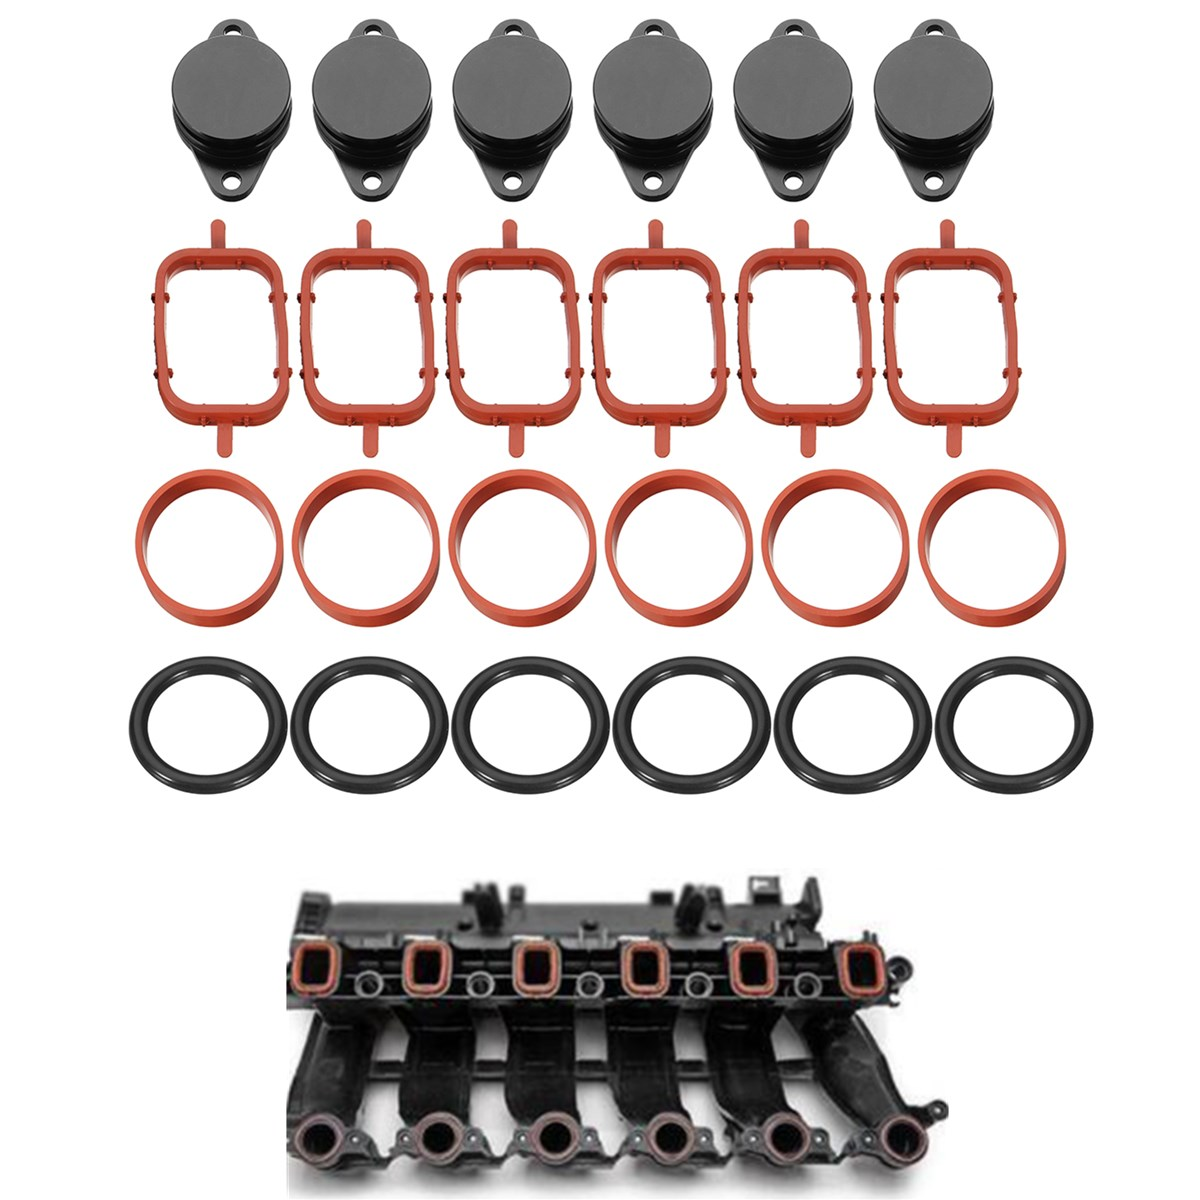 High quality 33mm 6Pcs for Diesel Swirl Flap Blanks Blank Repair Kit + Intake Manifold Gaskets Replacement Bungs For BMW